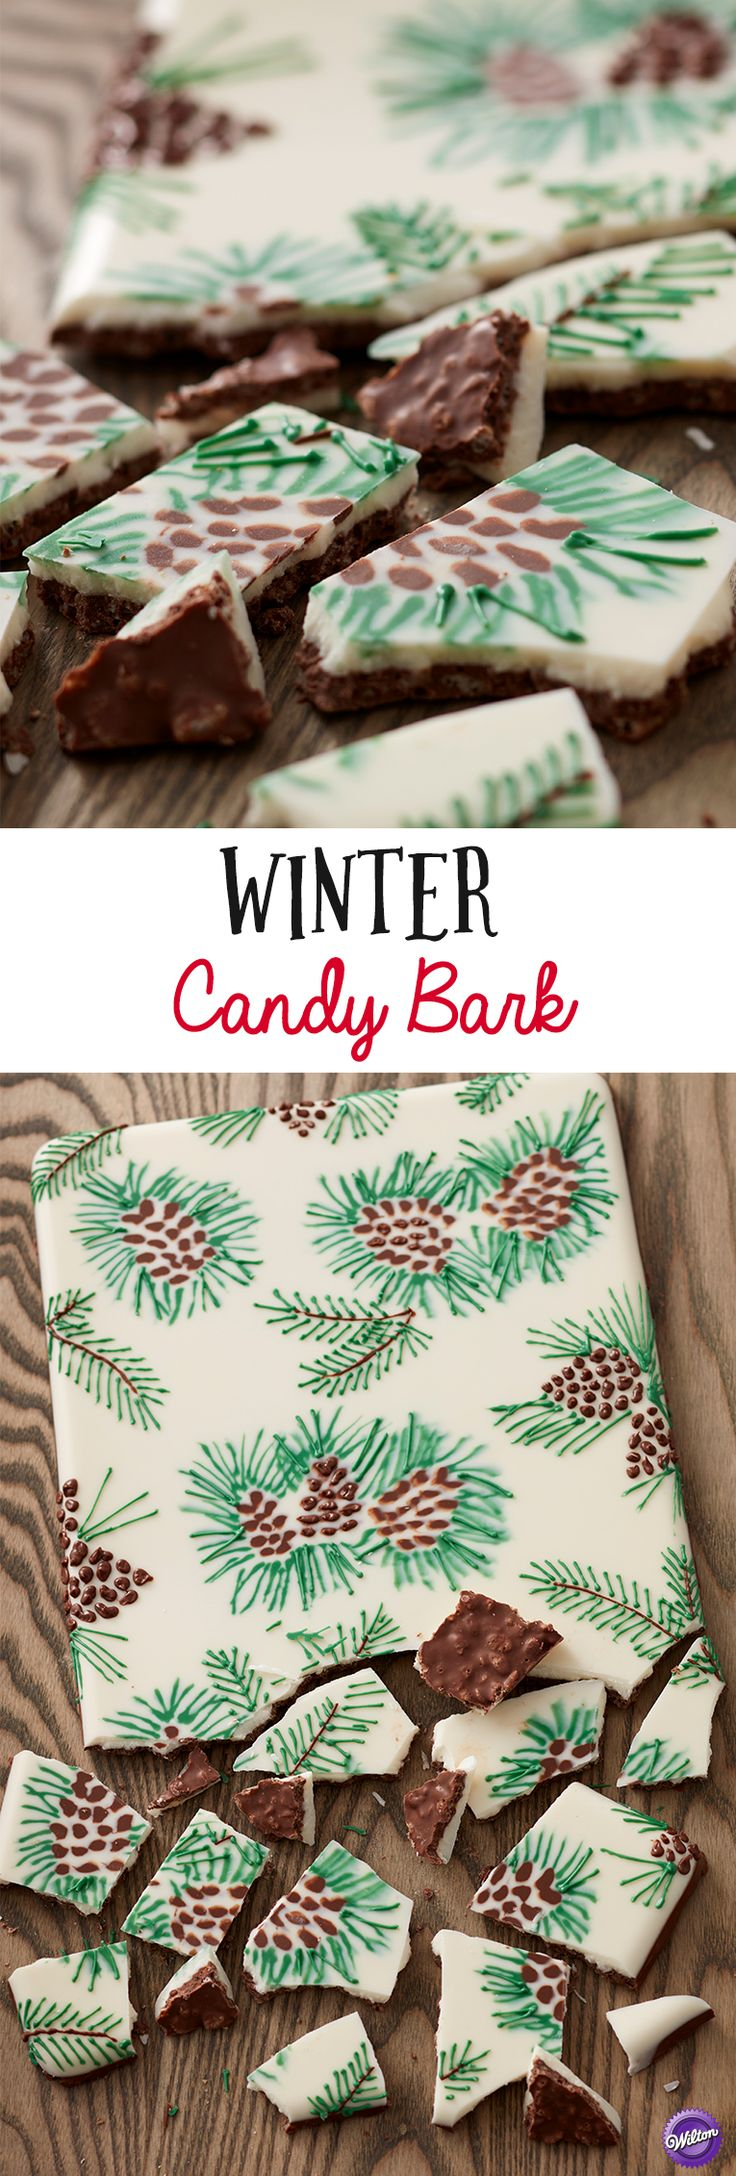 Crispy Pine Winter Candy Bark - A fun and whimsical winter treat, this Crispy Pine Cone Bark is a lovely and tasty sweet that's great for gift-giving! Made using Candy Melts candy and crispy rice cereal, this candy bark not only has a lovely pattern, but a crispy candy layer that's sure to please. Pipe the pine cone pattern directly on a cake pan and then layer melted candy on top to reveal an amazing design once unmolded.